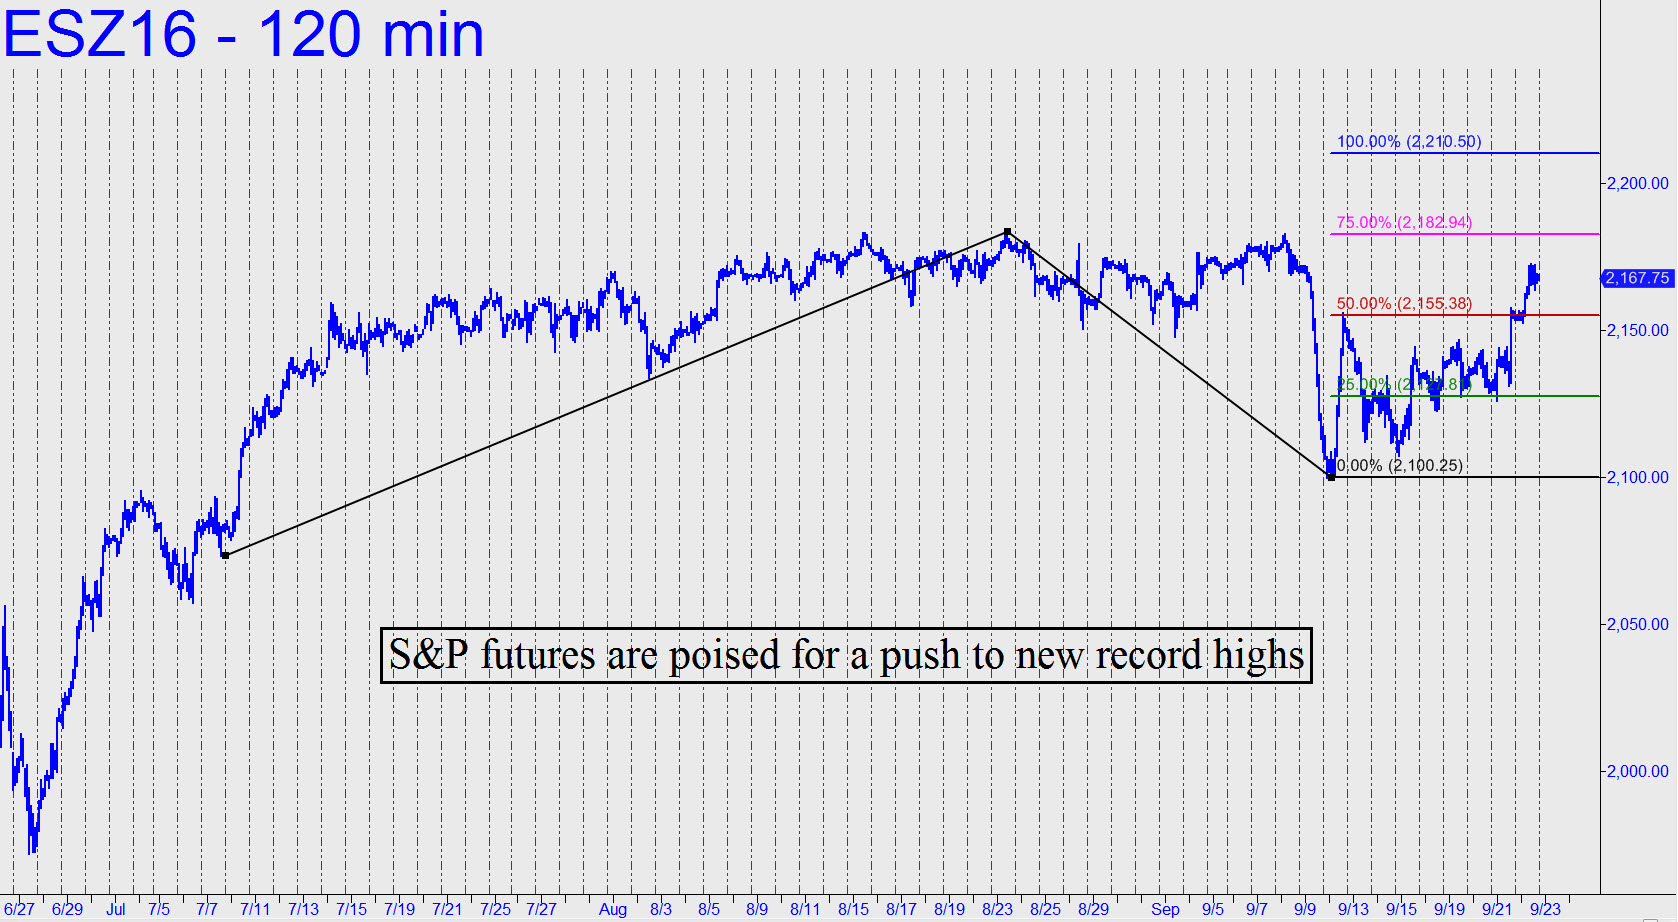 http://www.rickackerman.com/wp-content/uploads/2016/09/SP-futures-are-poised.jpg